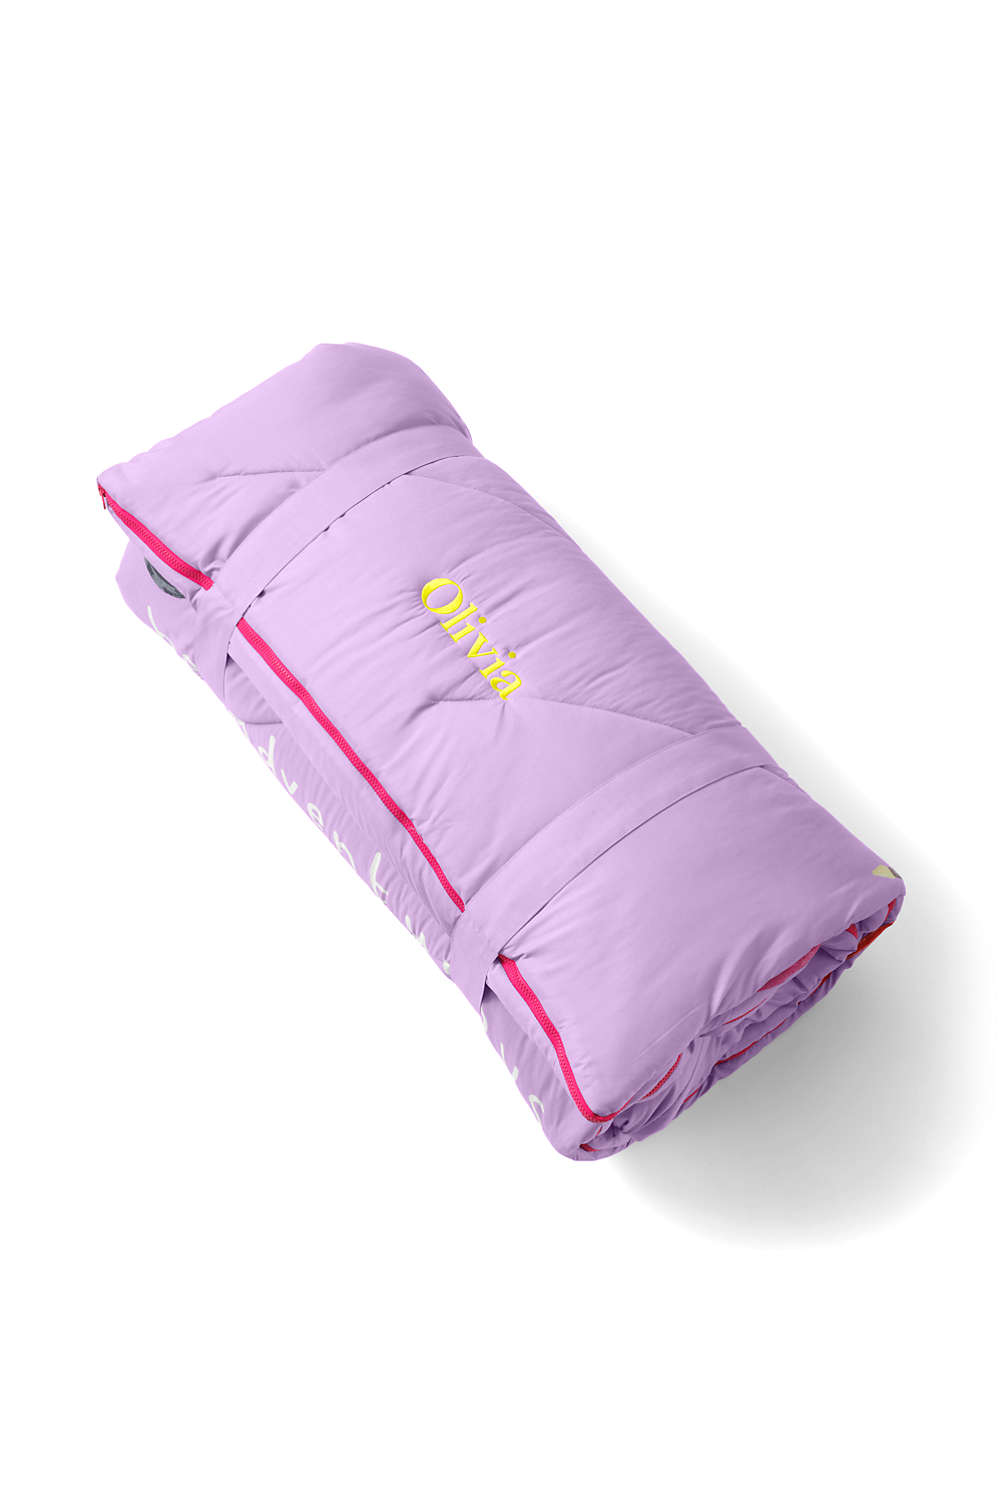 Kids Sleeping Bag With Pillow